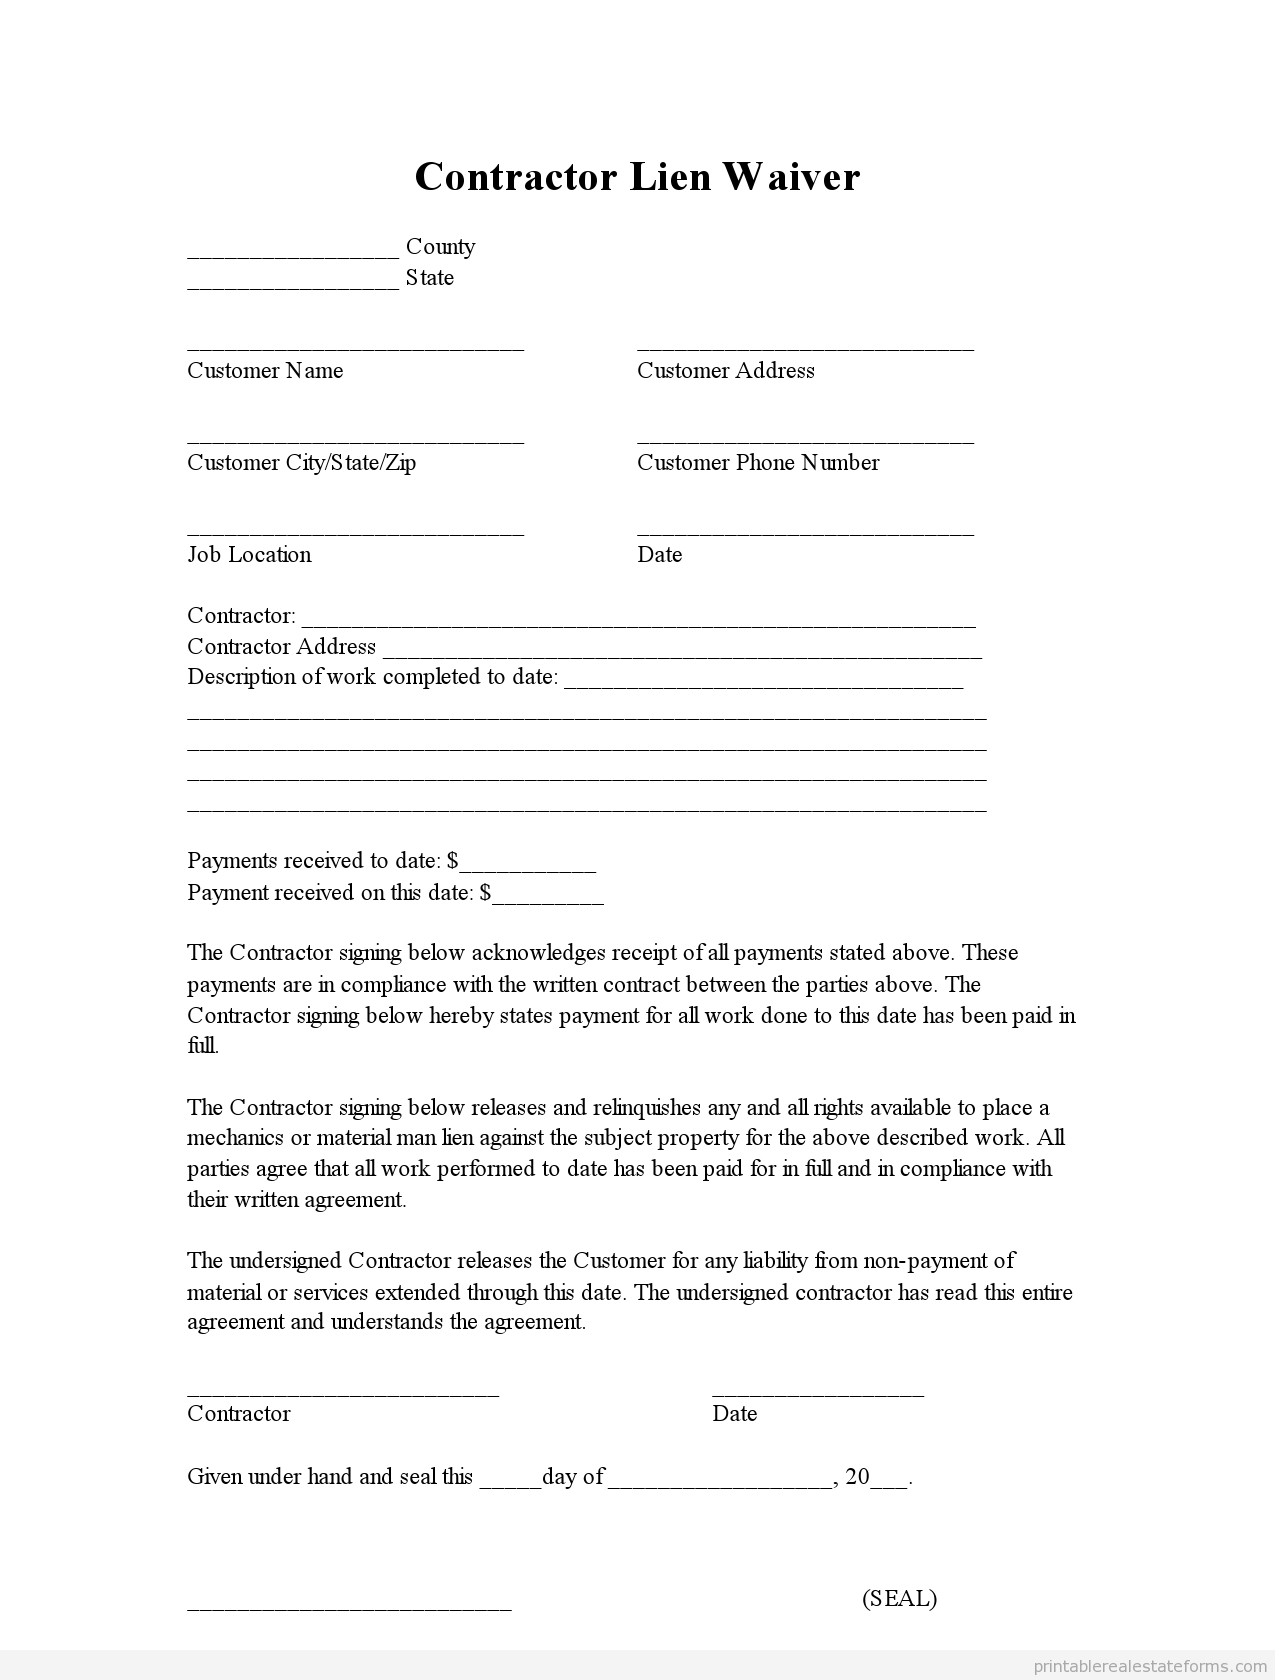 Real Estate Offer Letter Template Free - Sample Printable Contractor Lien Waiver form